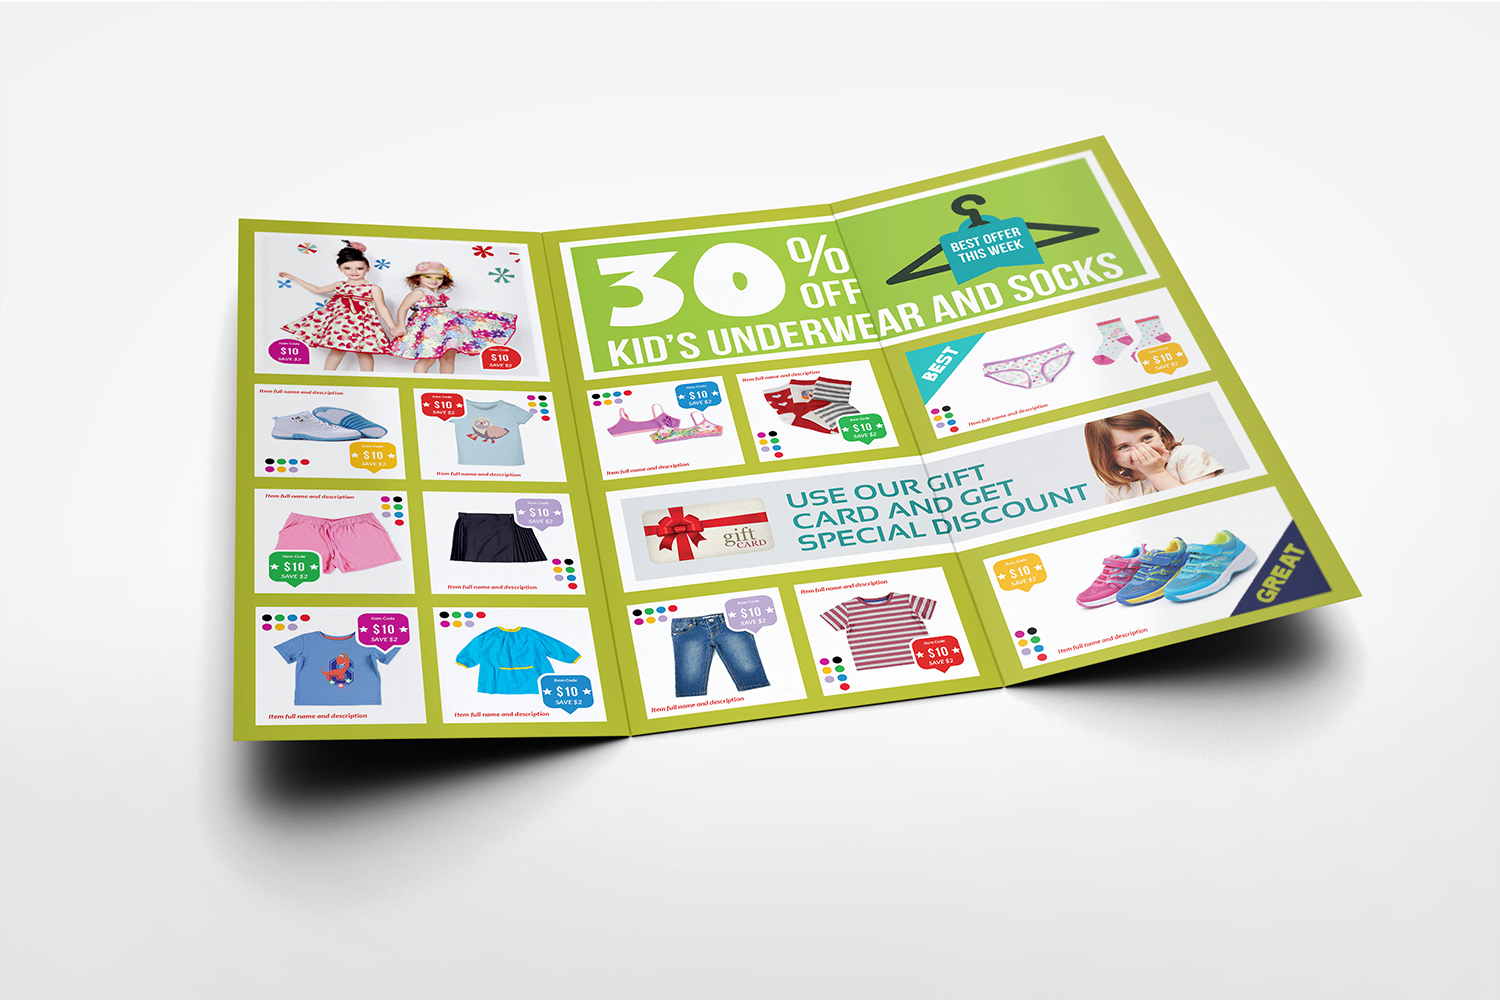 Kids Fashion Products Catalog Tri-Fold Brochure Tempalte example image 3